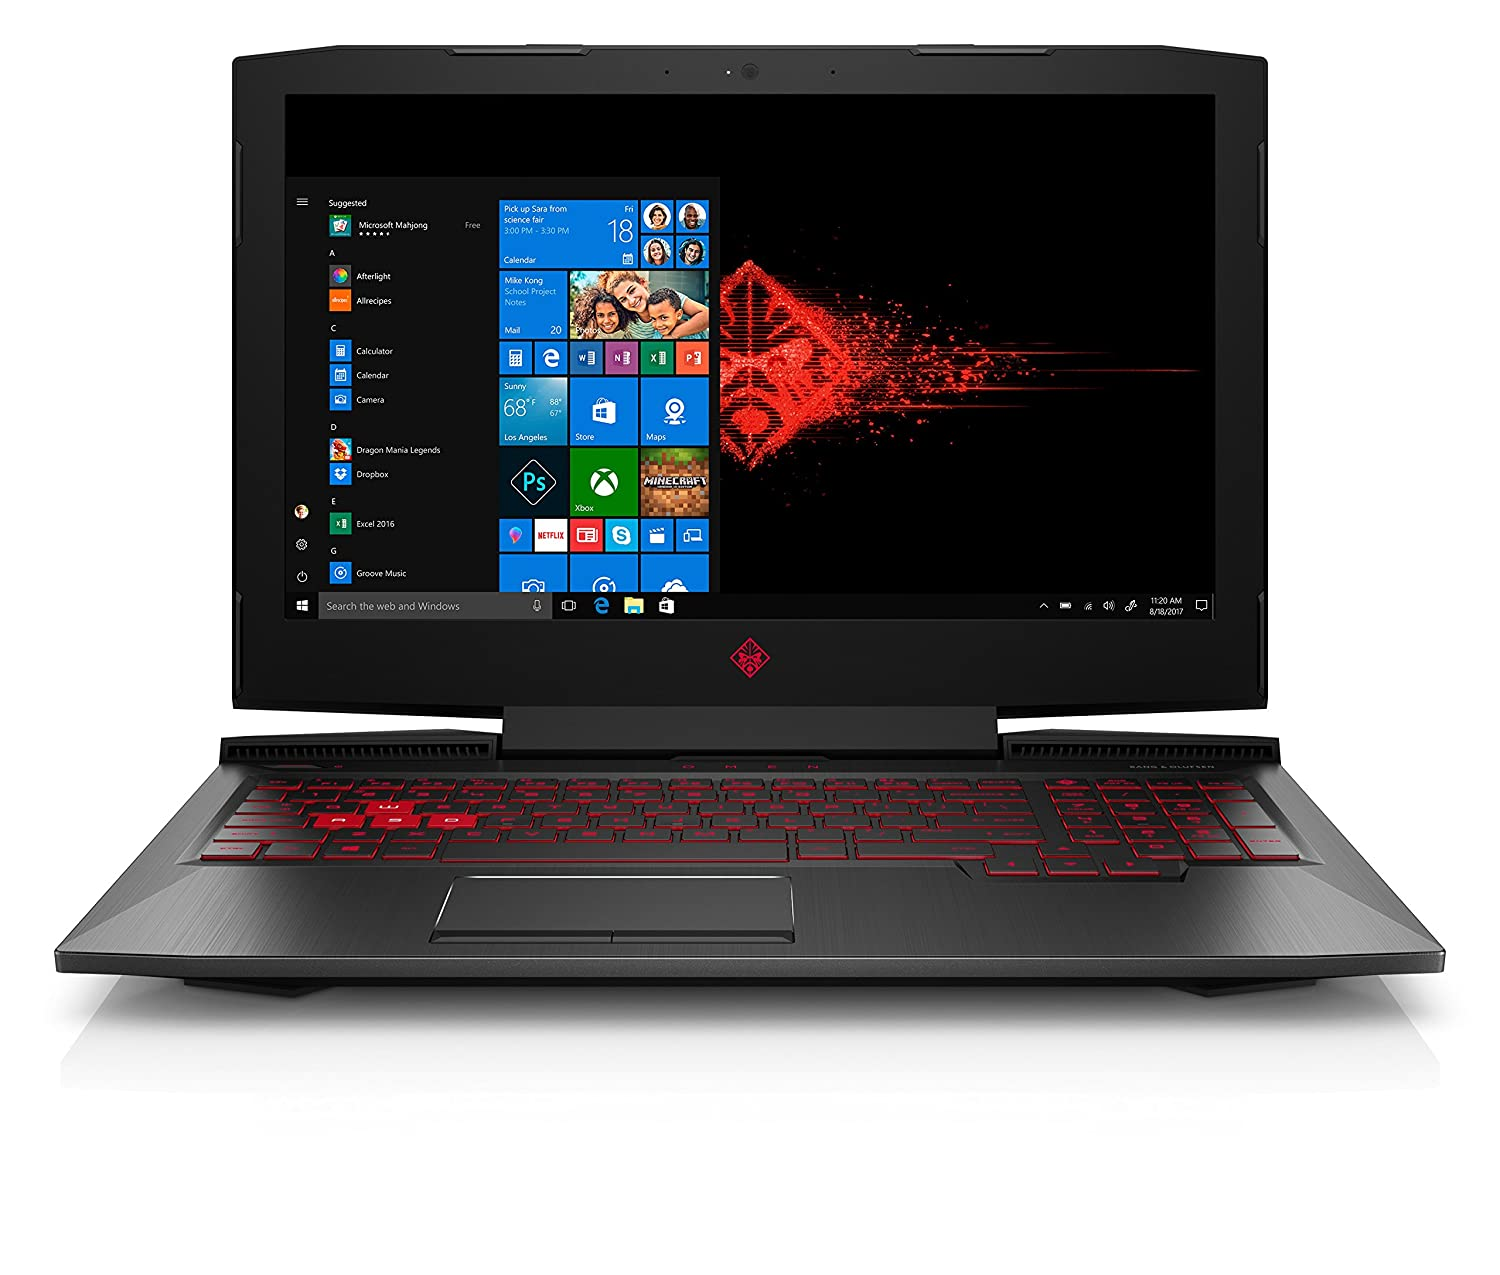 HP OMEN 15-ce024nf PC Portable Gaming Intel Core i5 15' (Full HD, 8 Go de RAM, SSD 256 Go, Nvidia GeForce GTX 1050 4 Go, Windows 10) Noir 2WF41EA#ABF